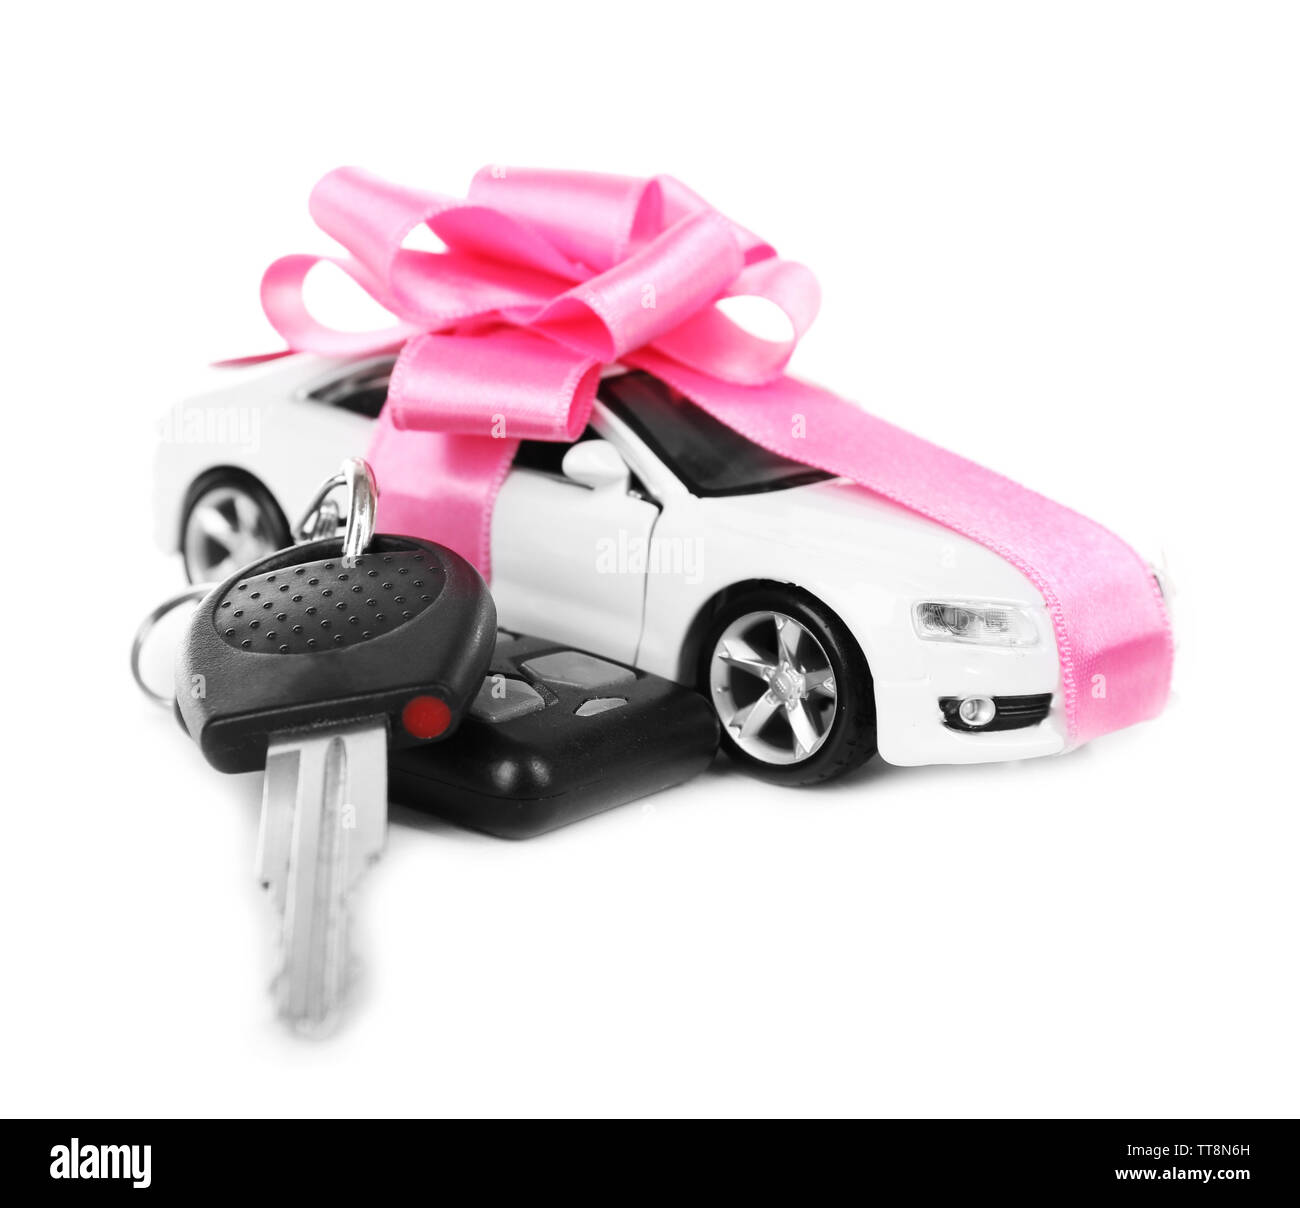 Keys and car with pink bow as present isolated on white - Stock Image